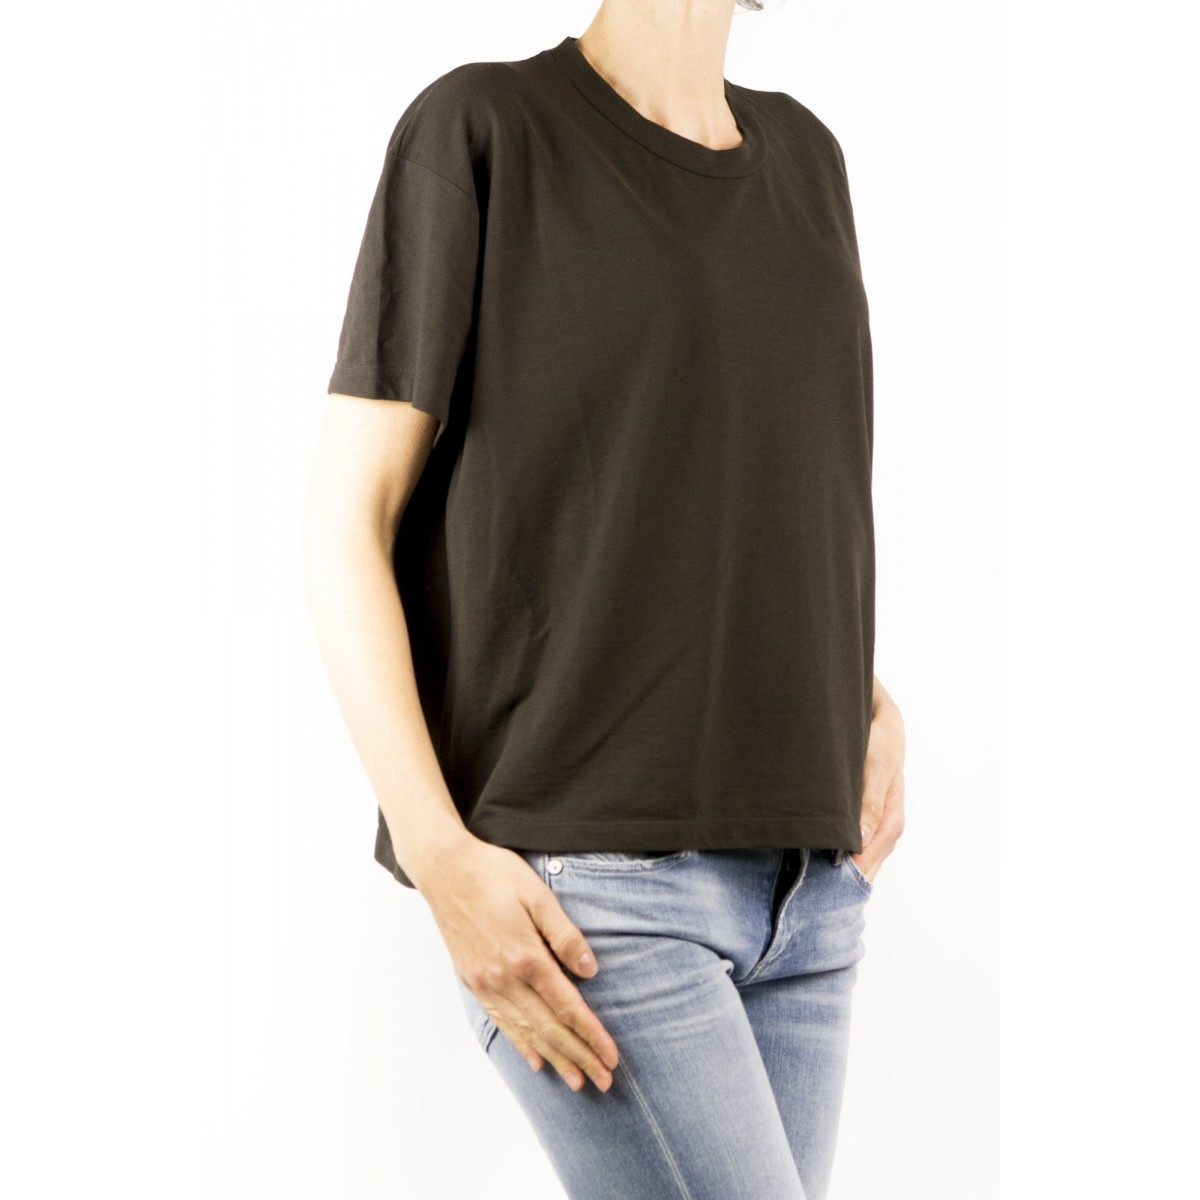 T-Shirt Zanone Woman - 8517123 Z0480 T-Shirt Over Ice Cotton Z1094 - marrone